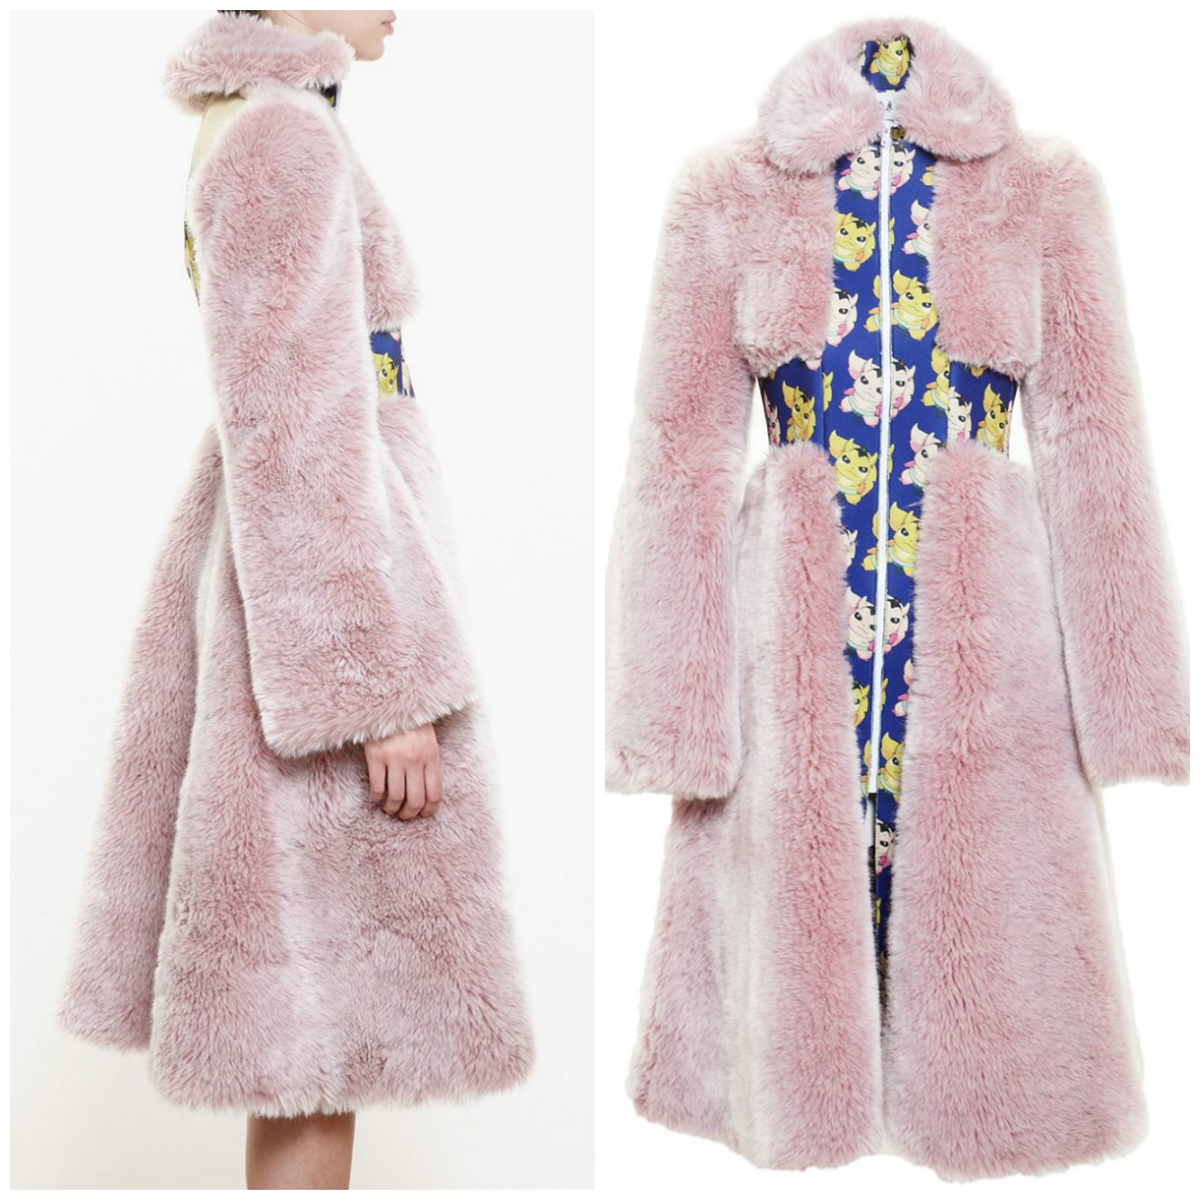 AWAKE Faux Fur Coat